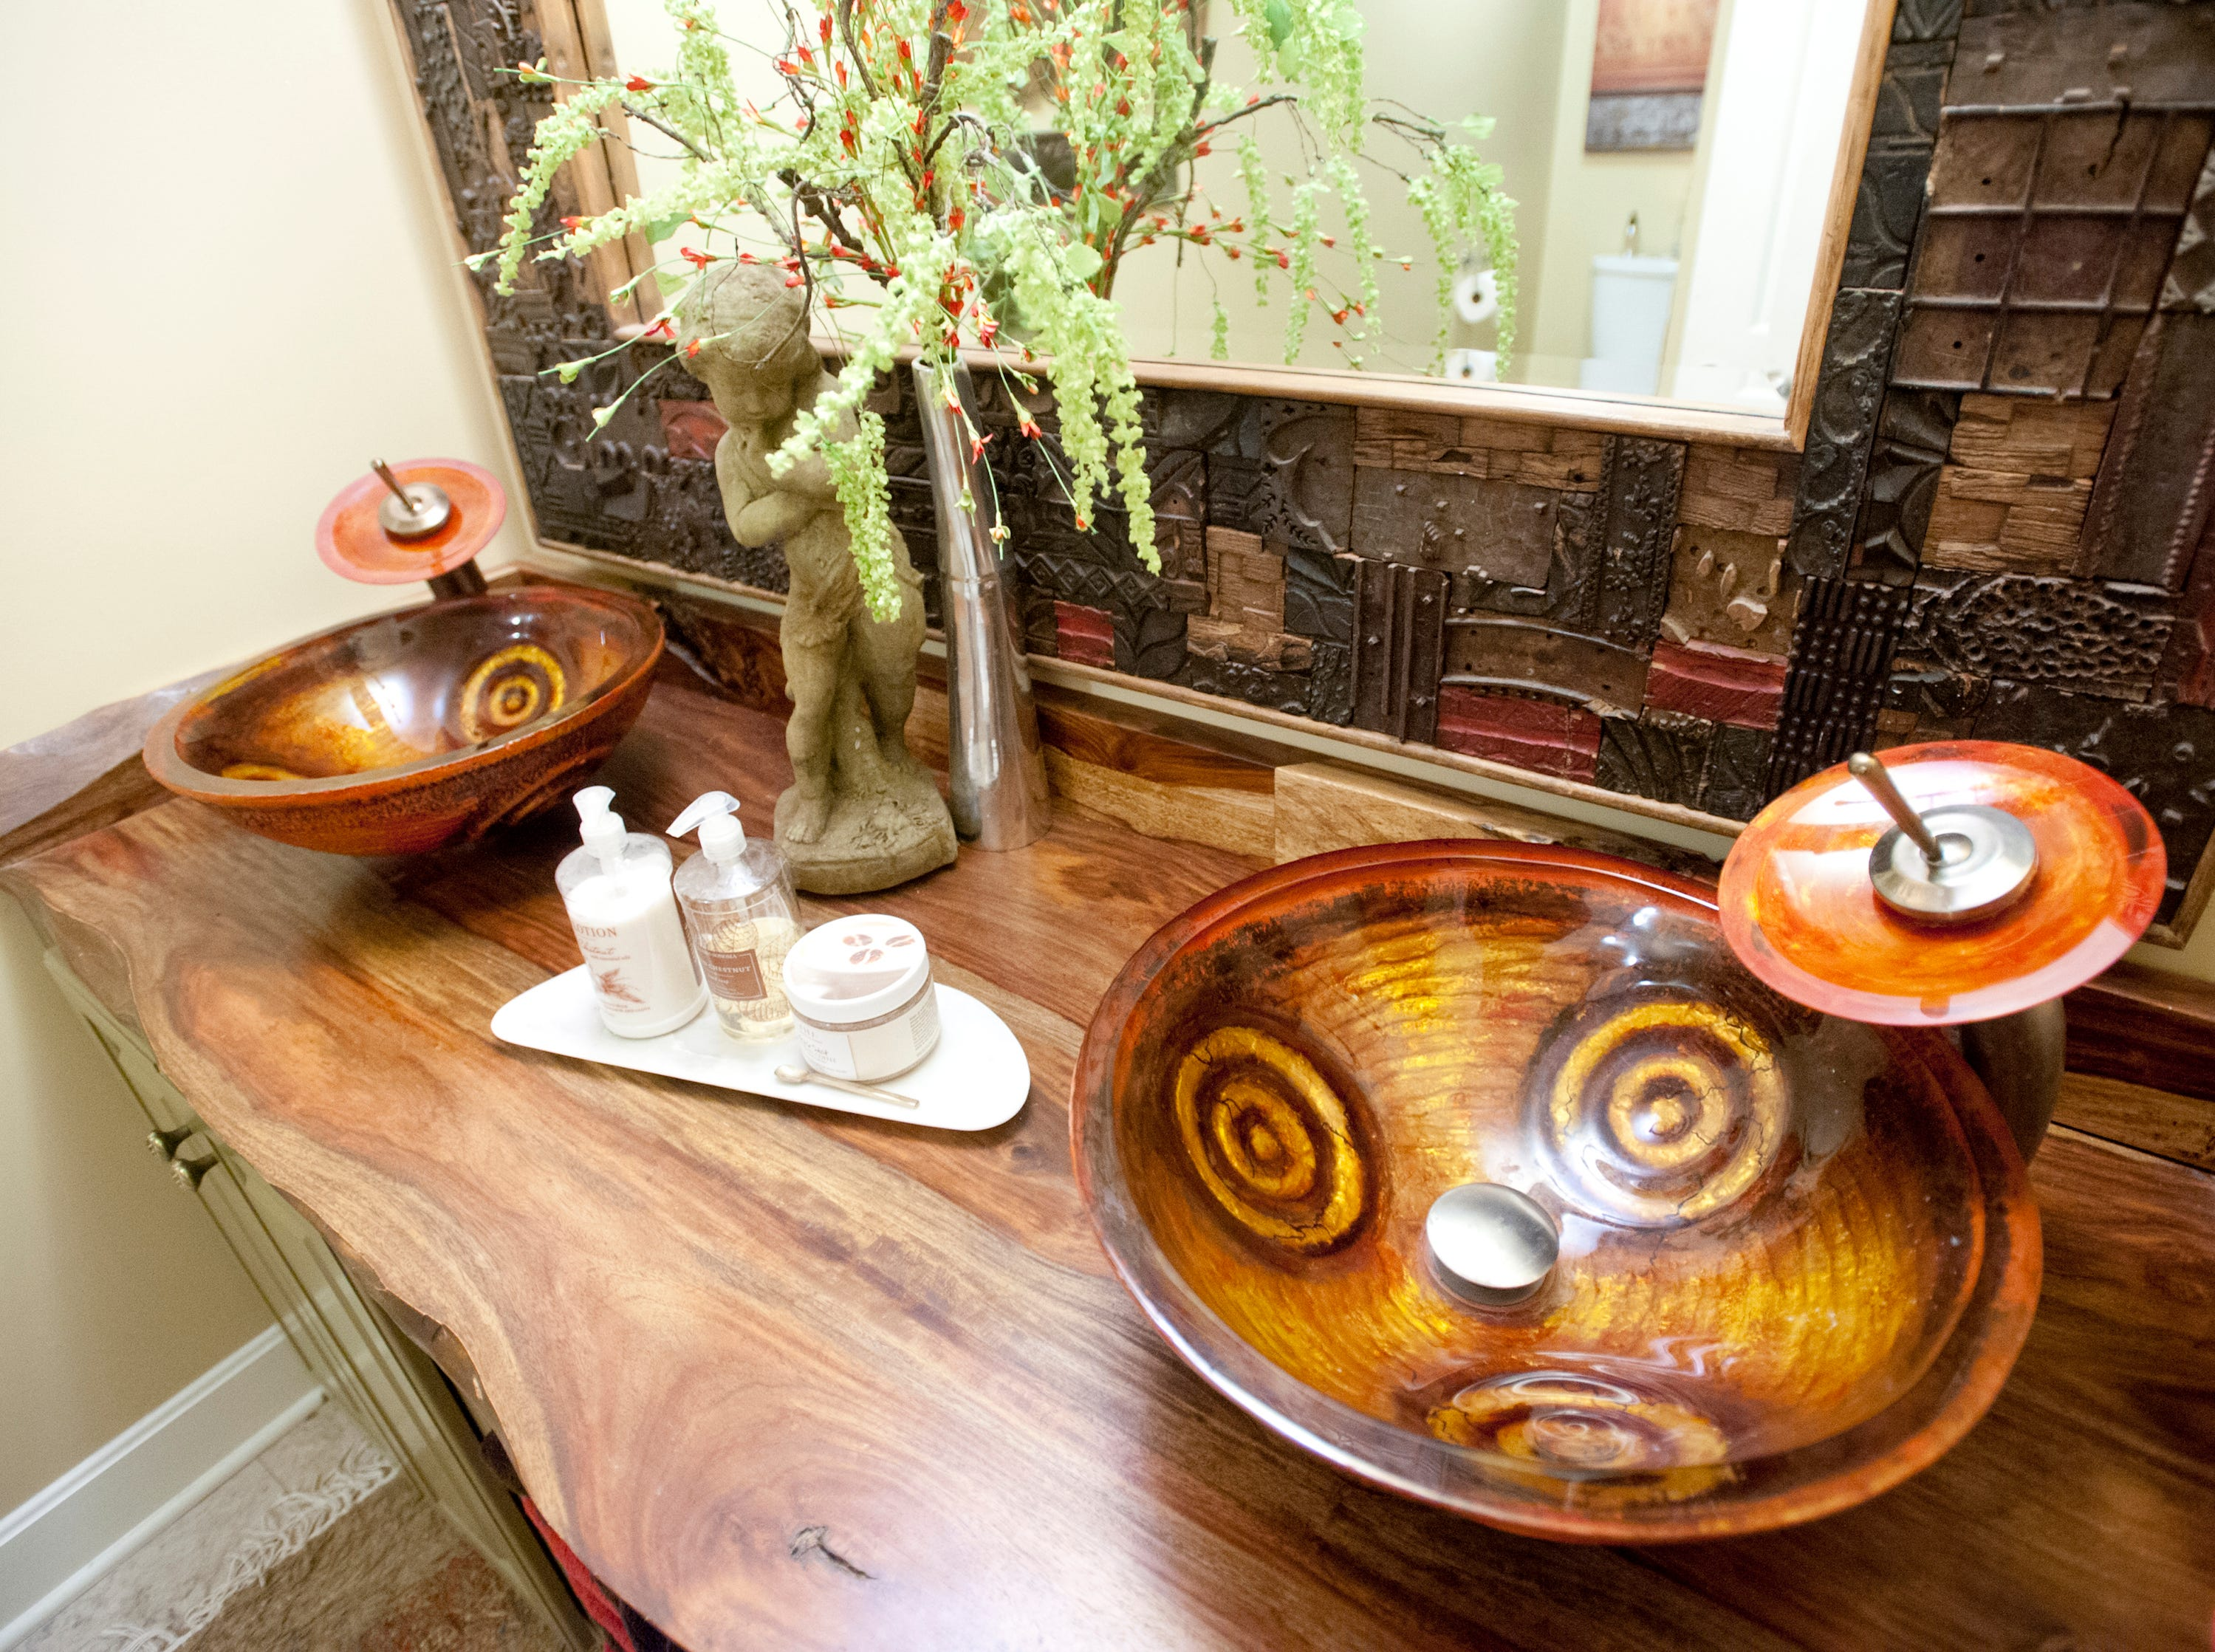 The guest bathroom features these dual decorative bowl sinks.